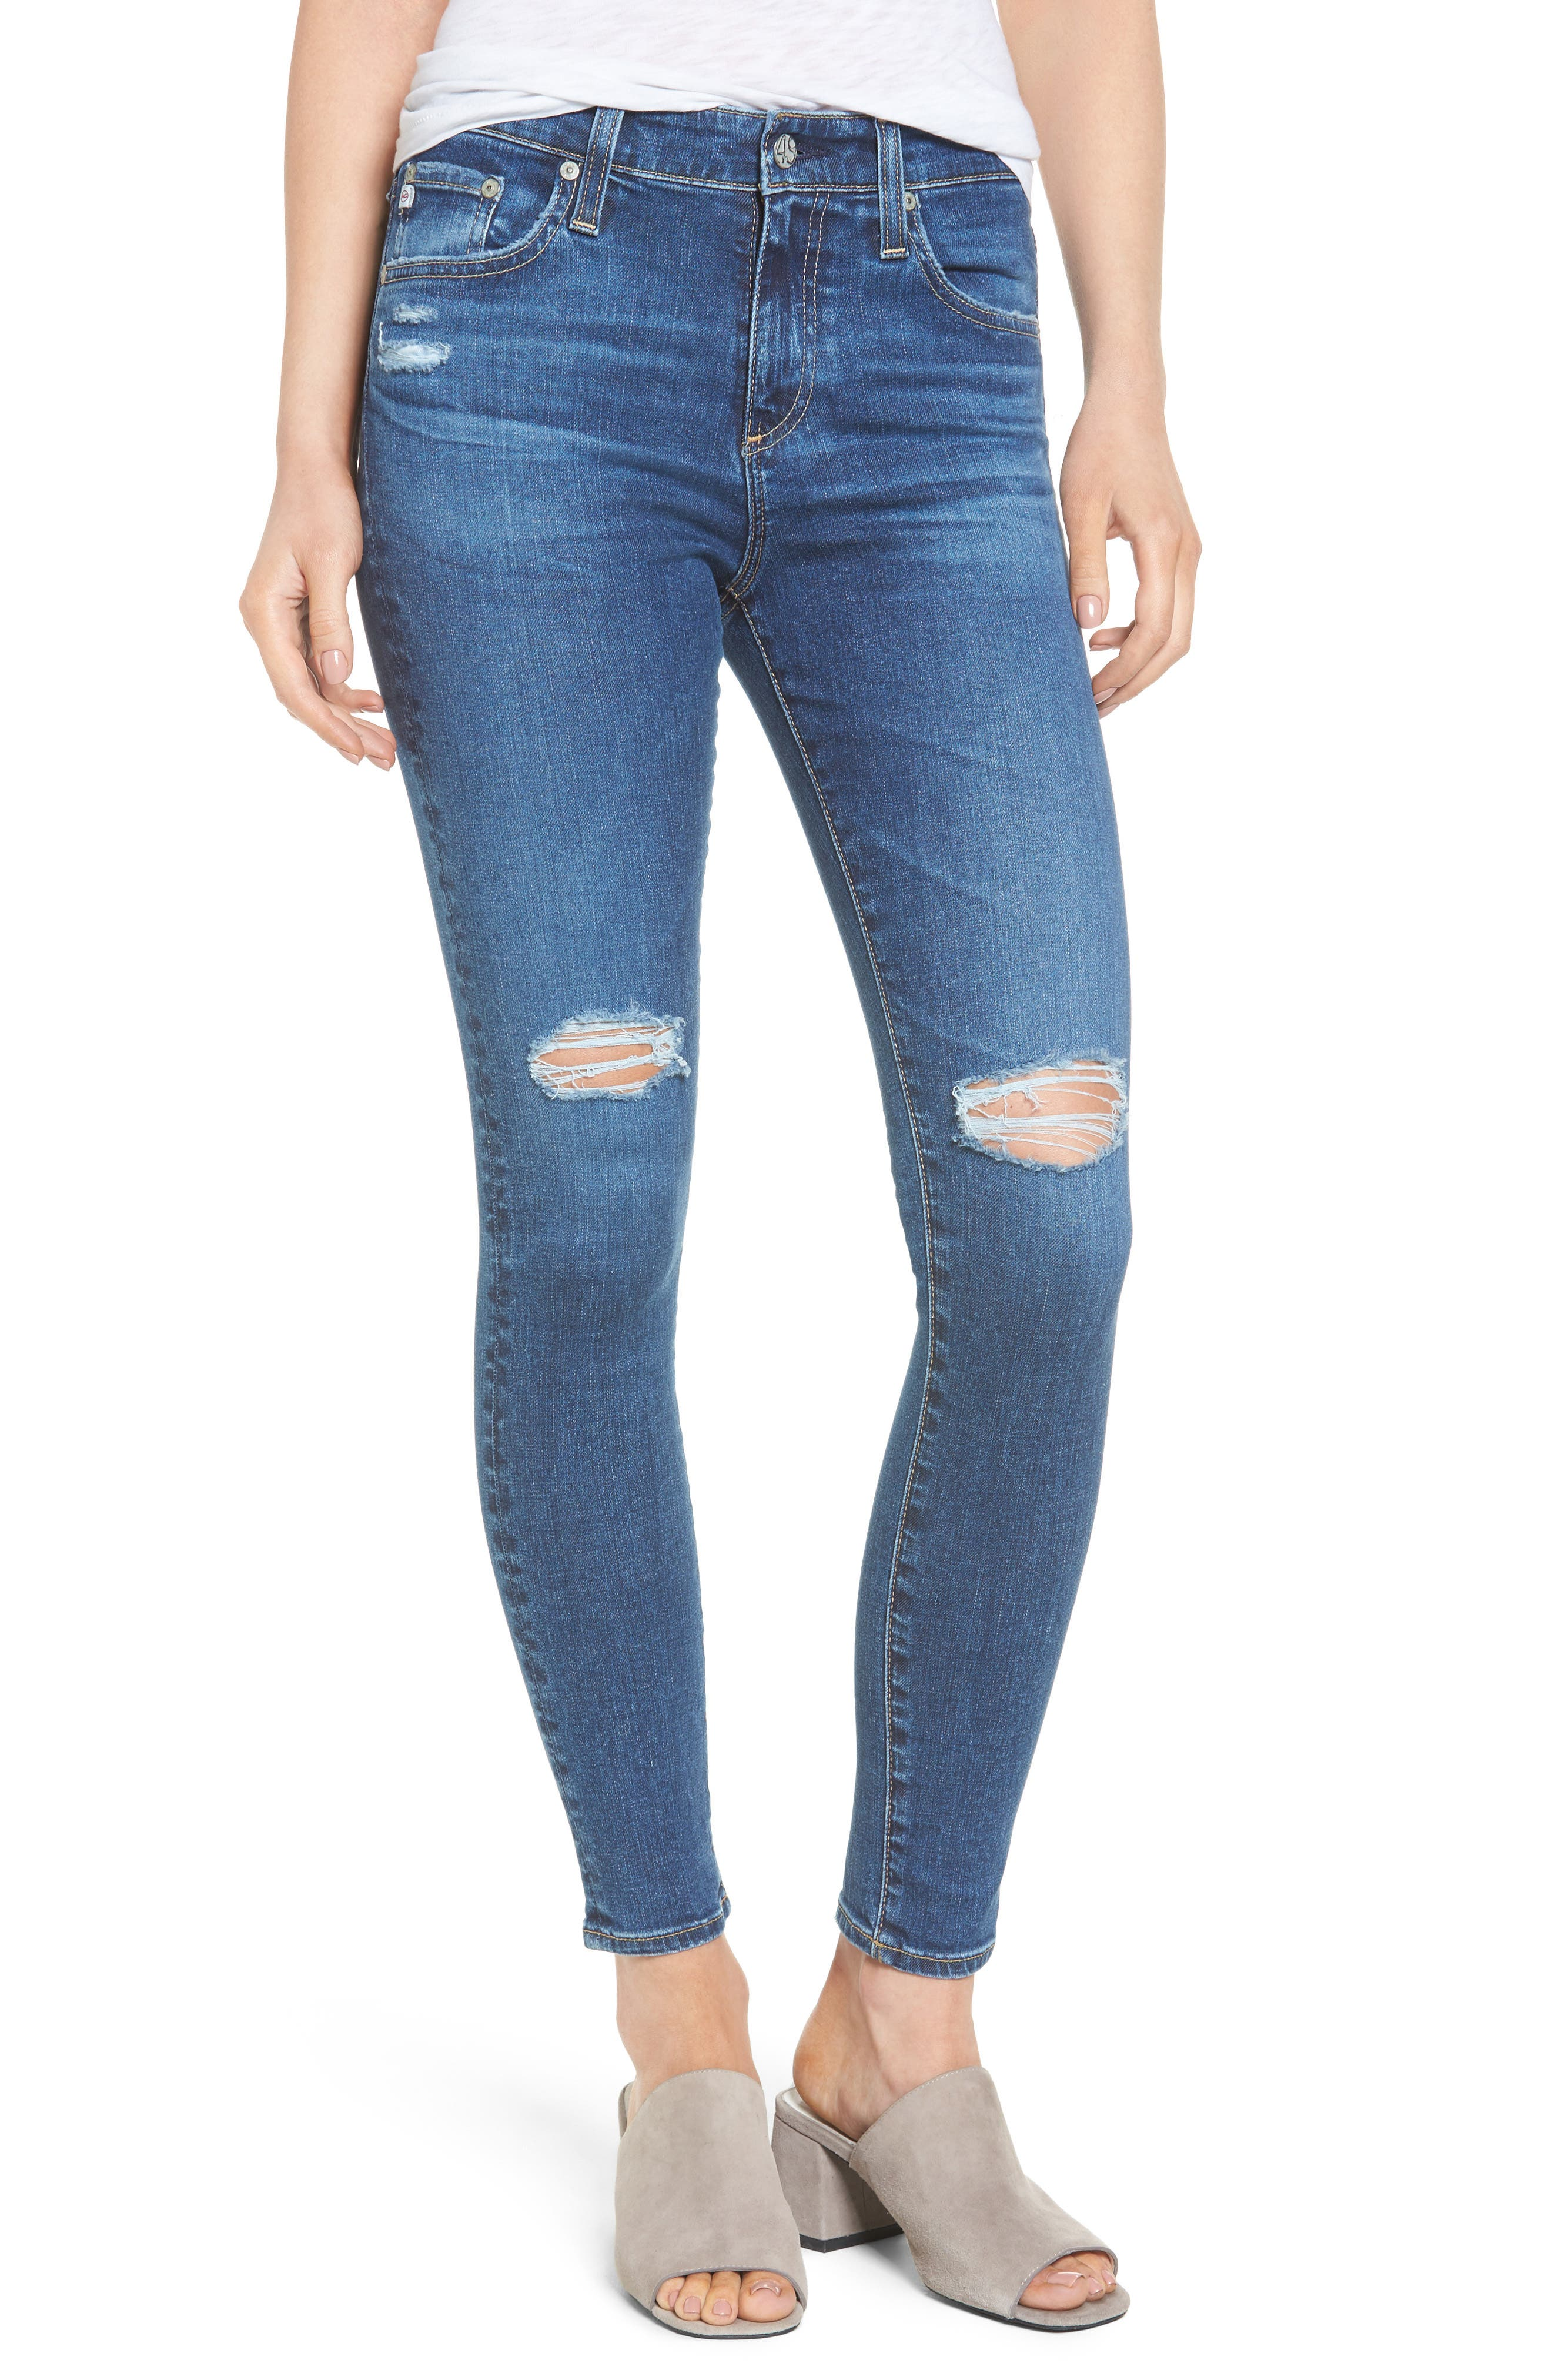 Alternate Image 1 Selected - AG The Farrah High Waist Ankle Skinny Jeans (13 Years Day Break Destroyed)